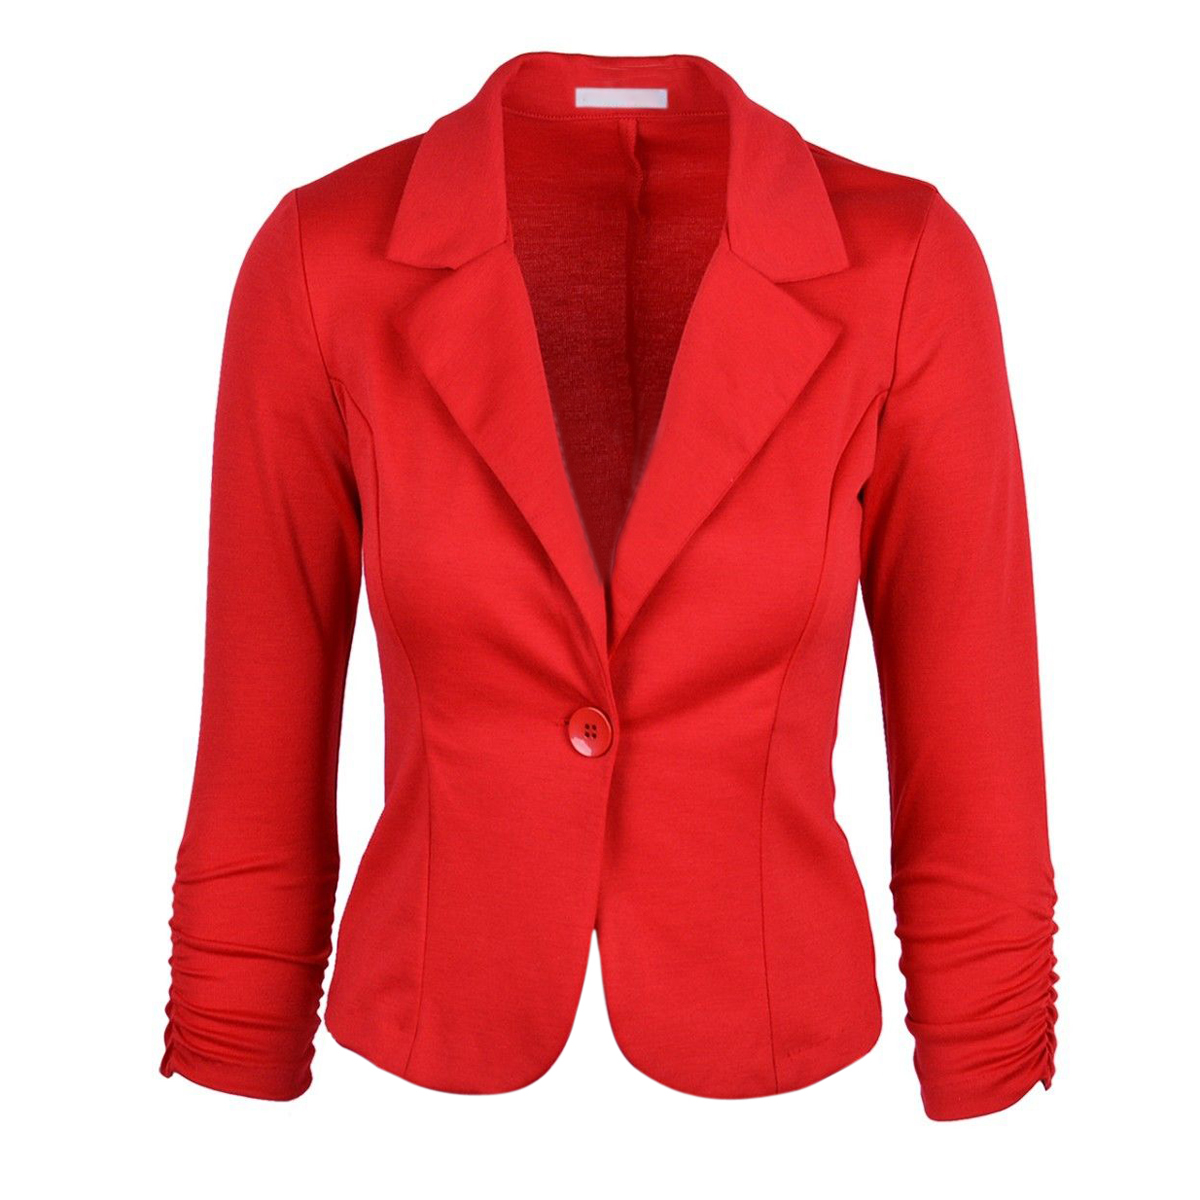 Compare Prices on Womens Red Blazer Jacket- Online Shopping/Buy ...